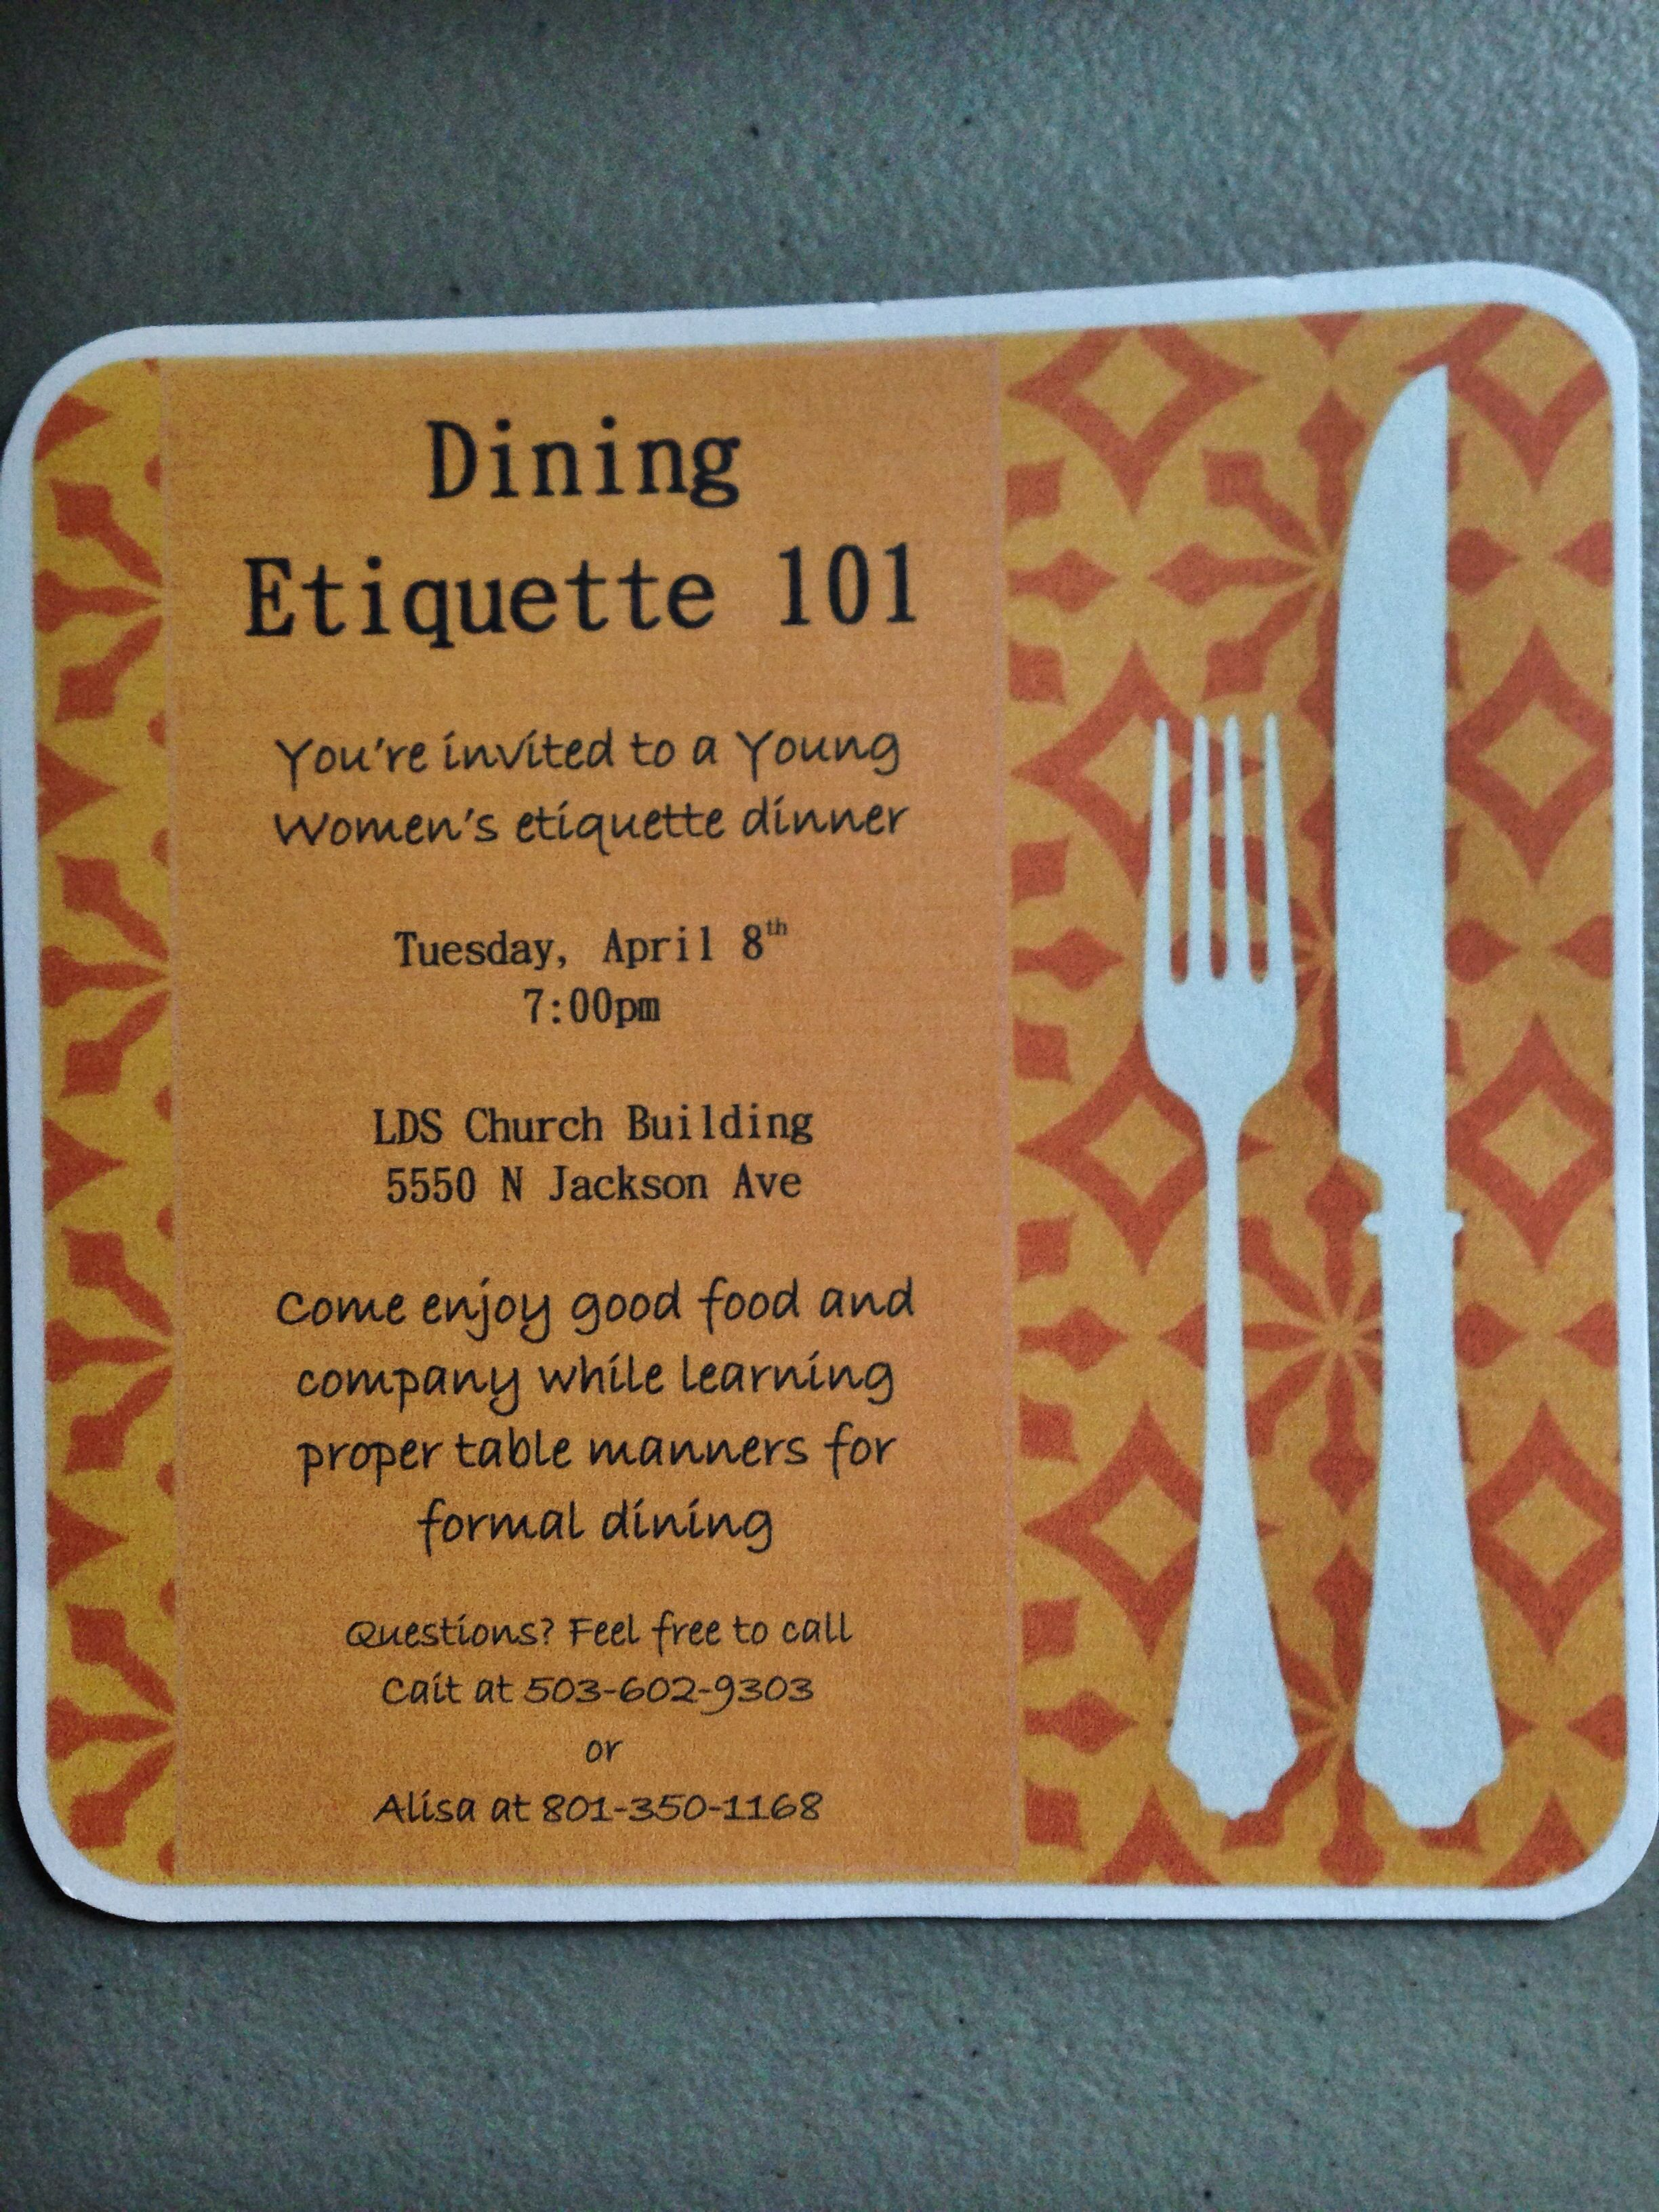 Progressive Dinner And Or Etiquette Night Progressive Dinner Could Be At Different Homes Or In